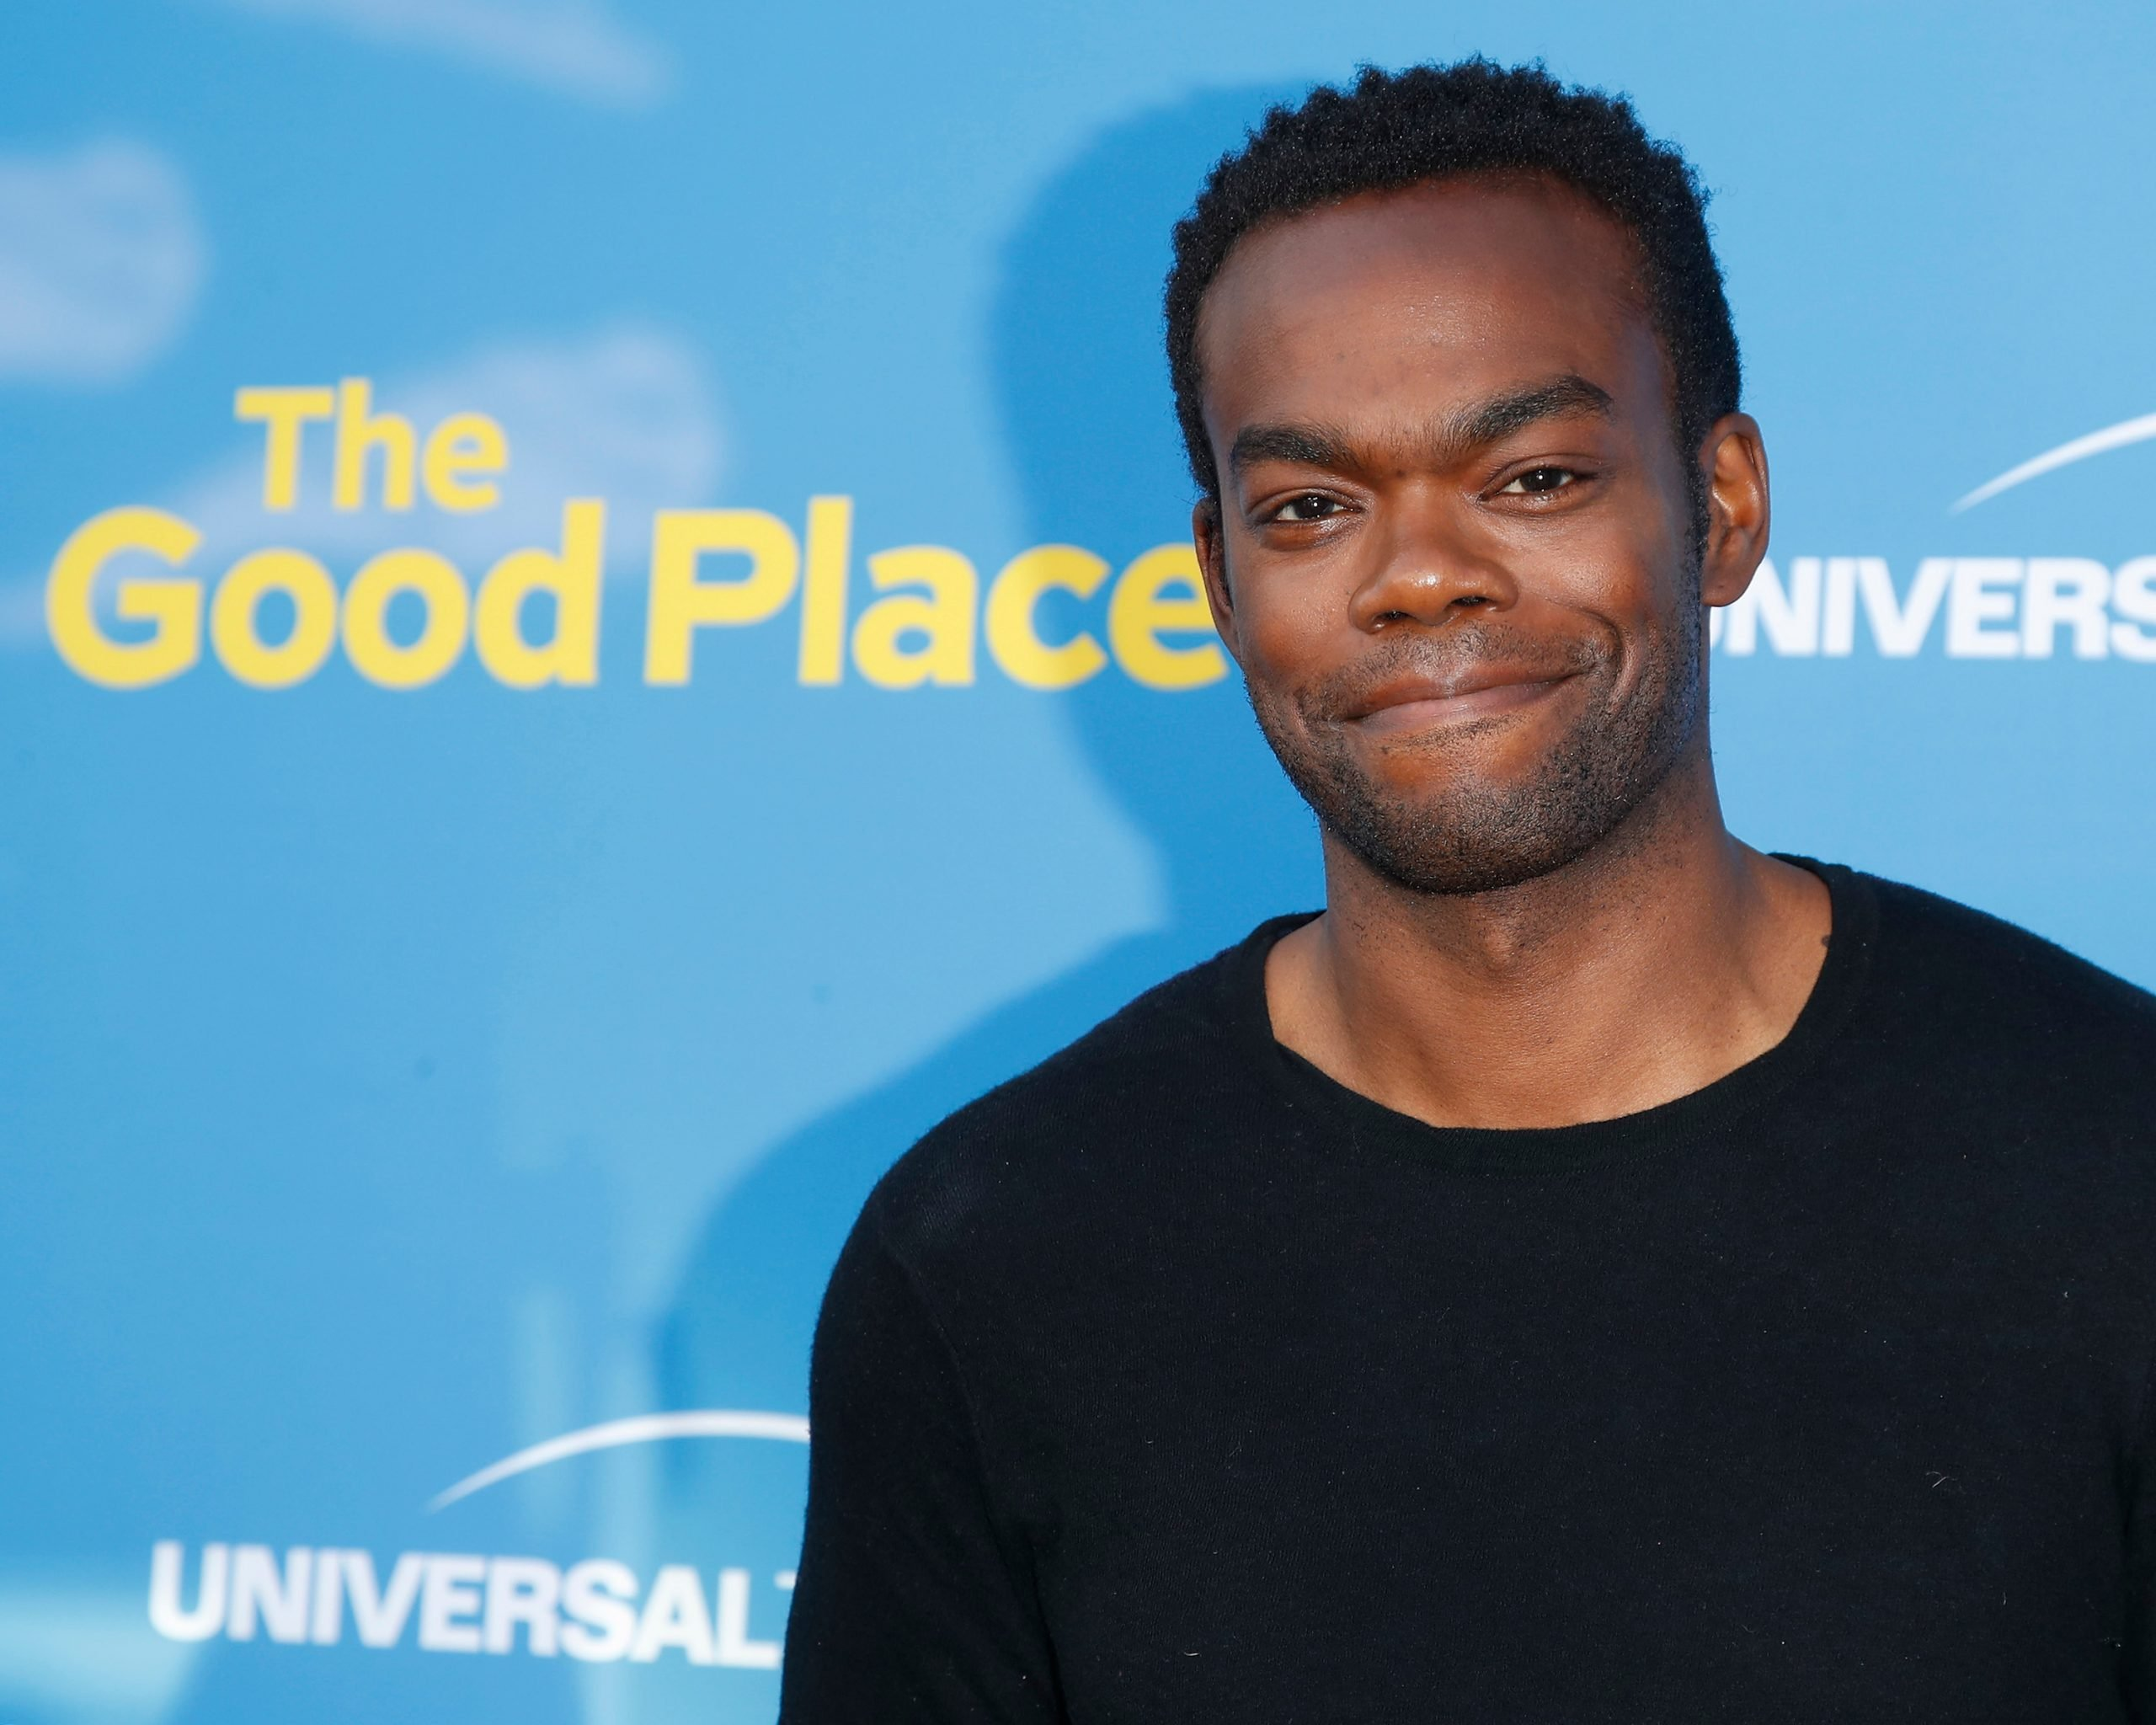 William Jackson Harper smiles at a red carpet event. He is a black man and wears a black top.